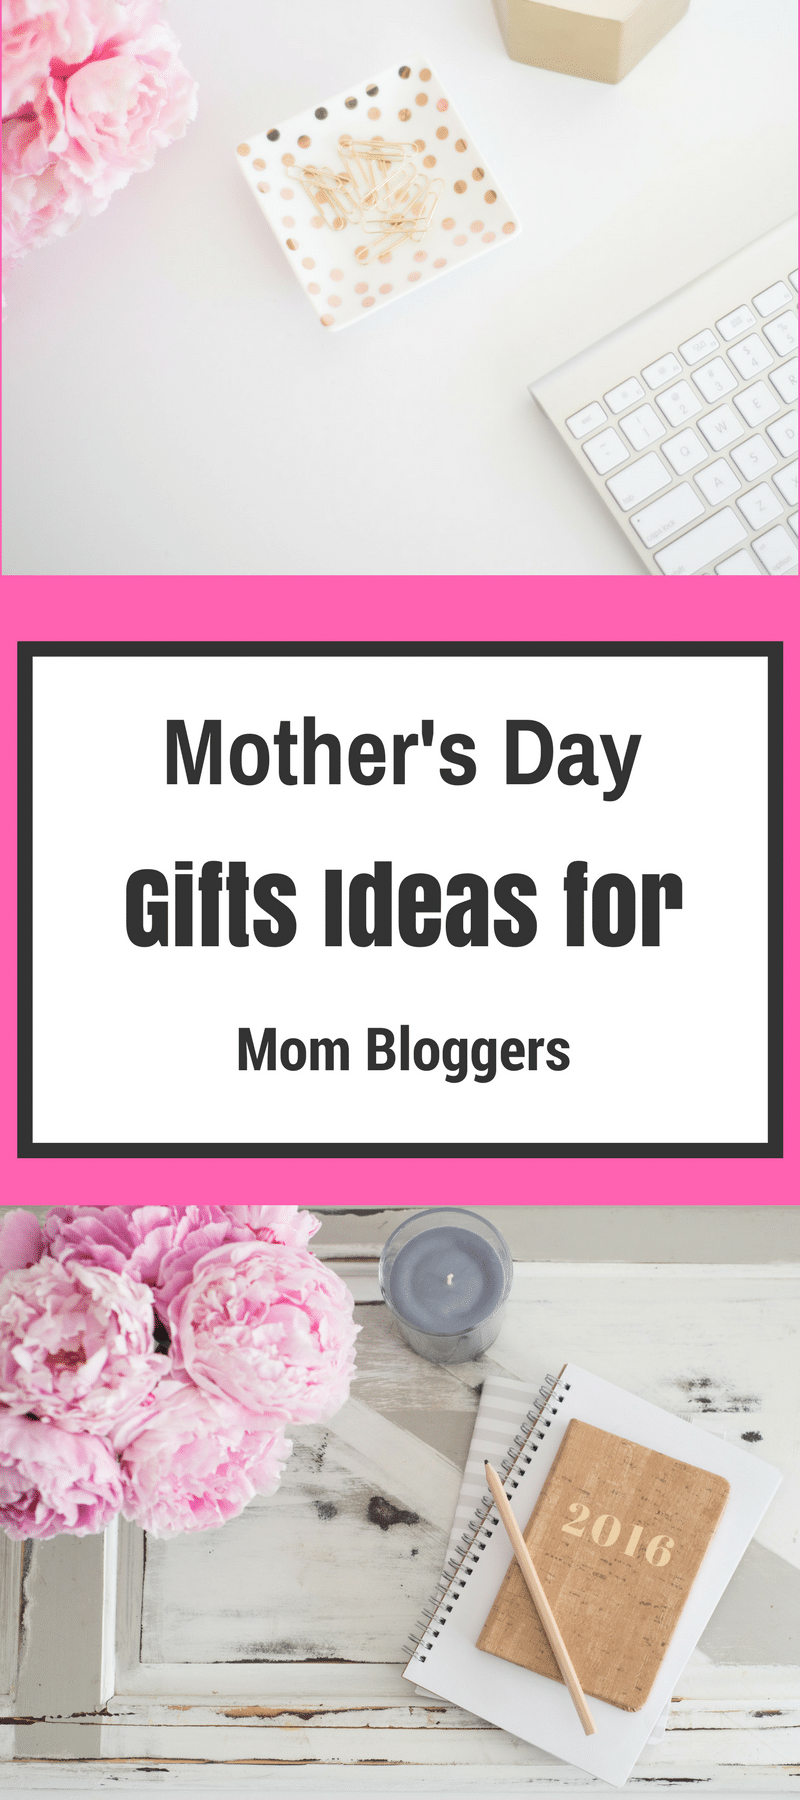 This is SUCH a great list of gift ideas for blogging mom's or ANY blogger, Mom or otherwise! via www.biscuitsandbooze.com